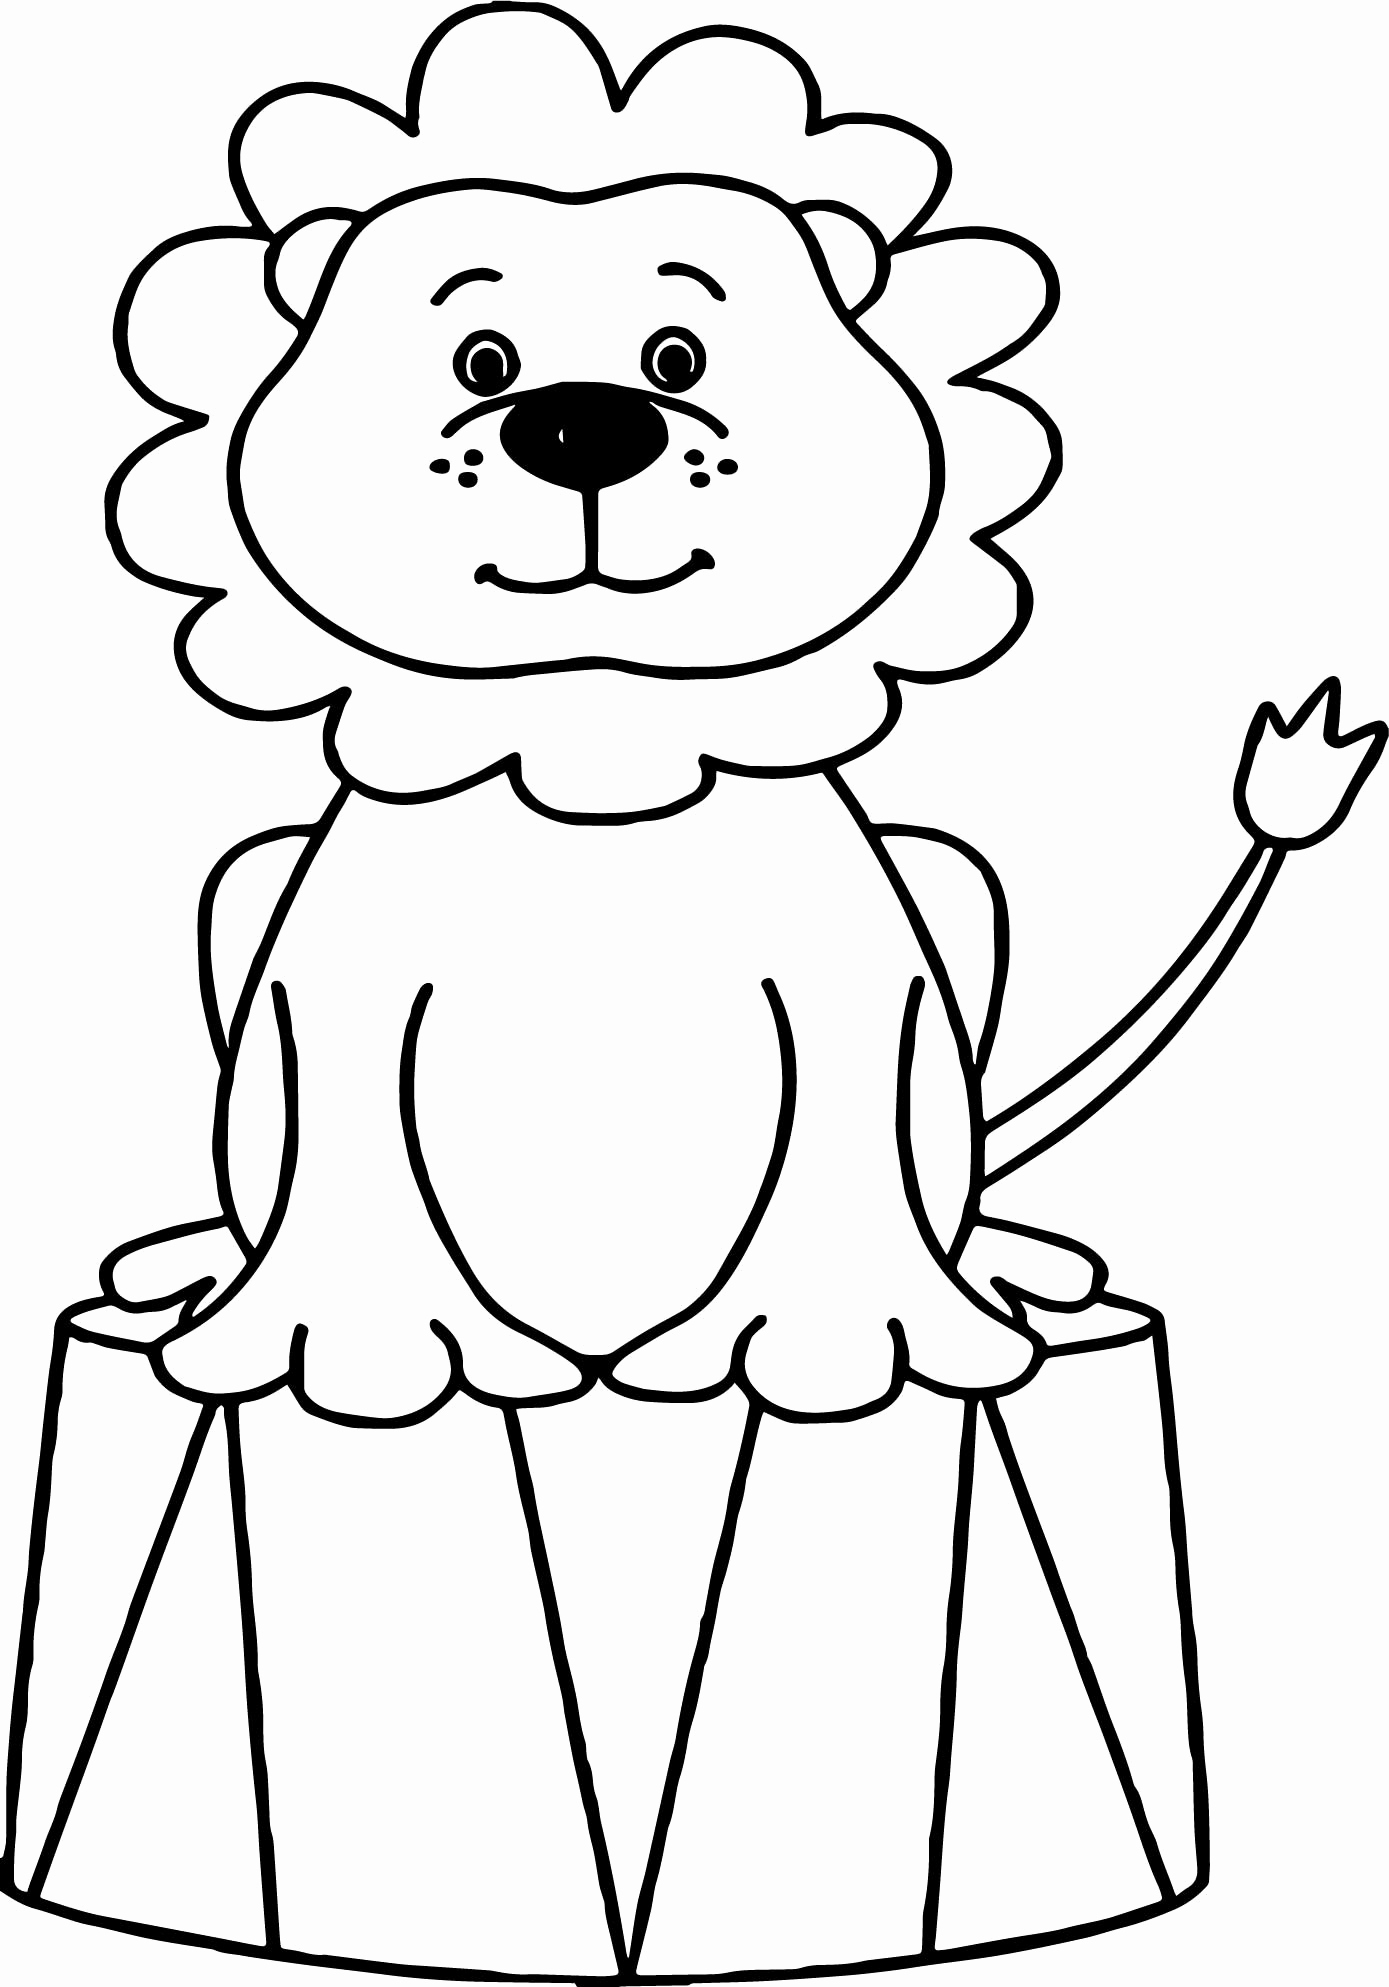 free clown coloring pages clowns coloring pages coloringpages1001com clown pages coloring free